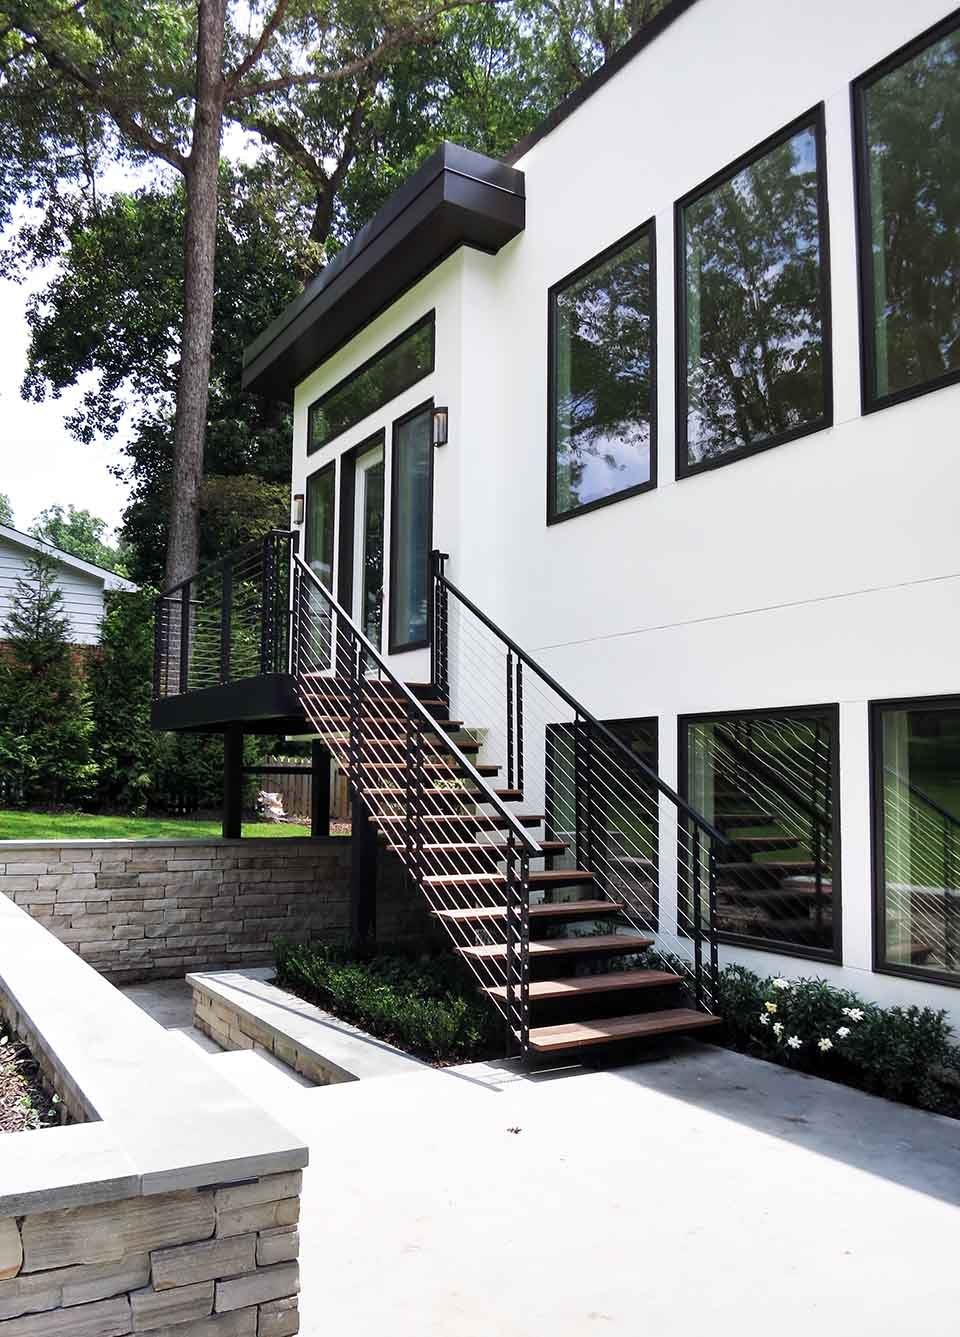 Exterior Stairs Southern Staircase Artistic Stairs | Metal Staircases For Homes | Beam | Stainless Steel | Support | Statement | Metallic